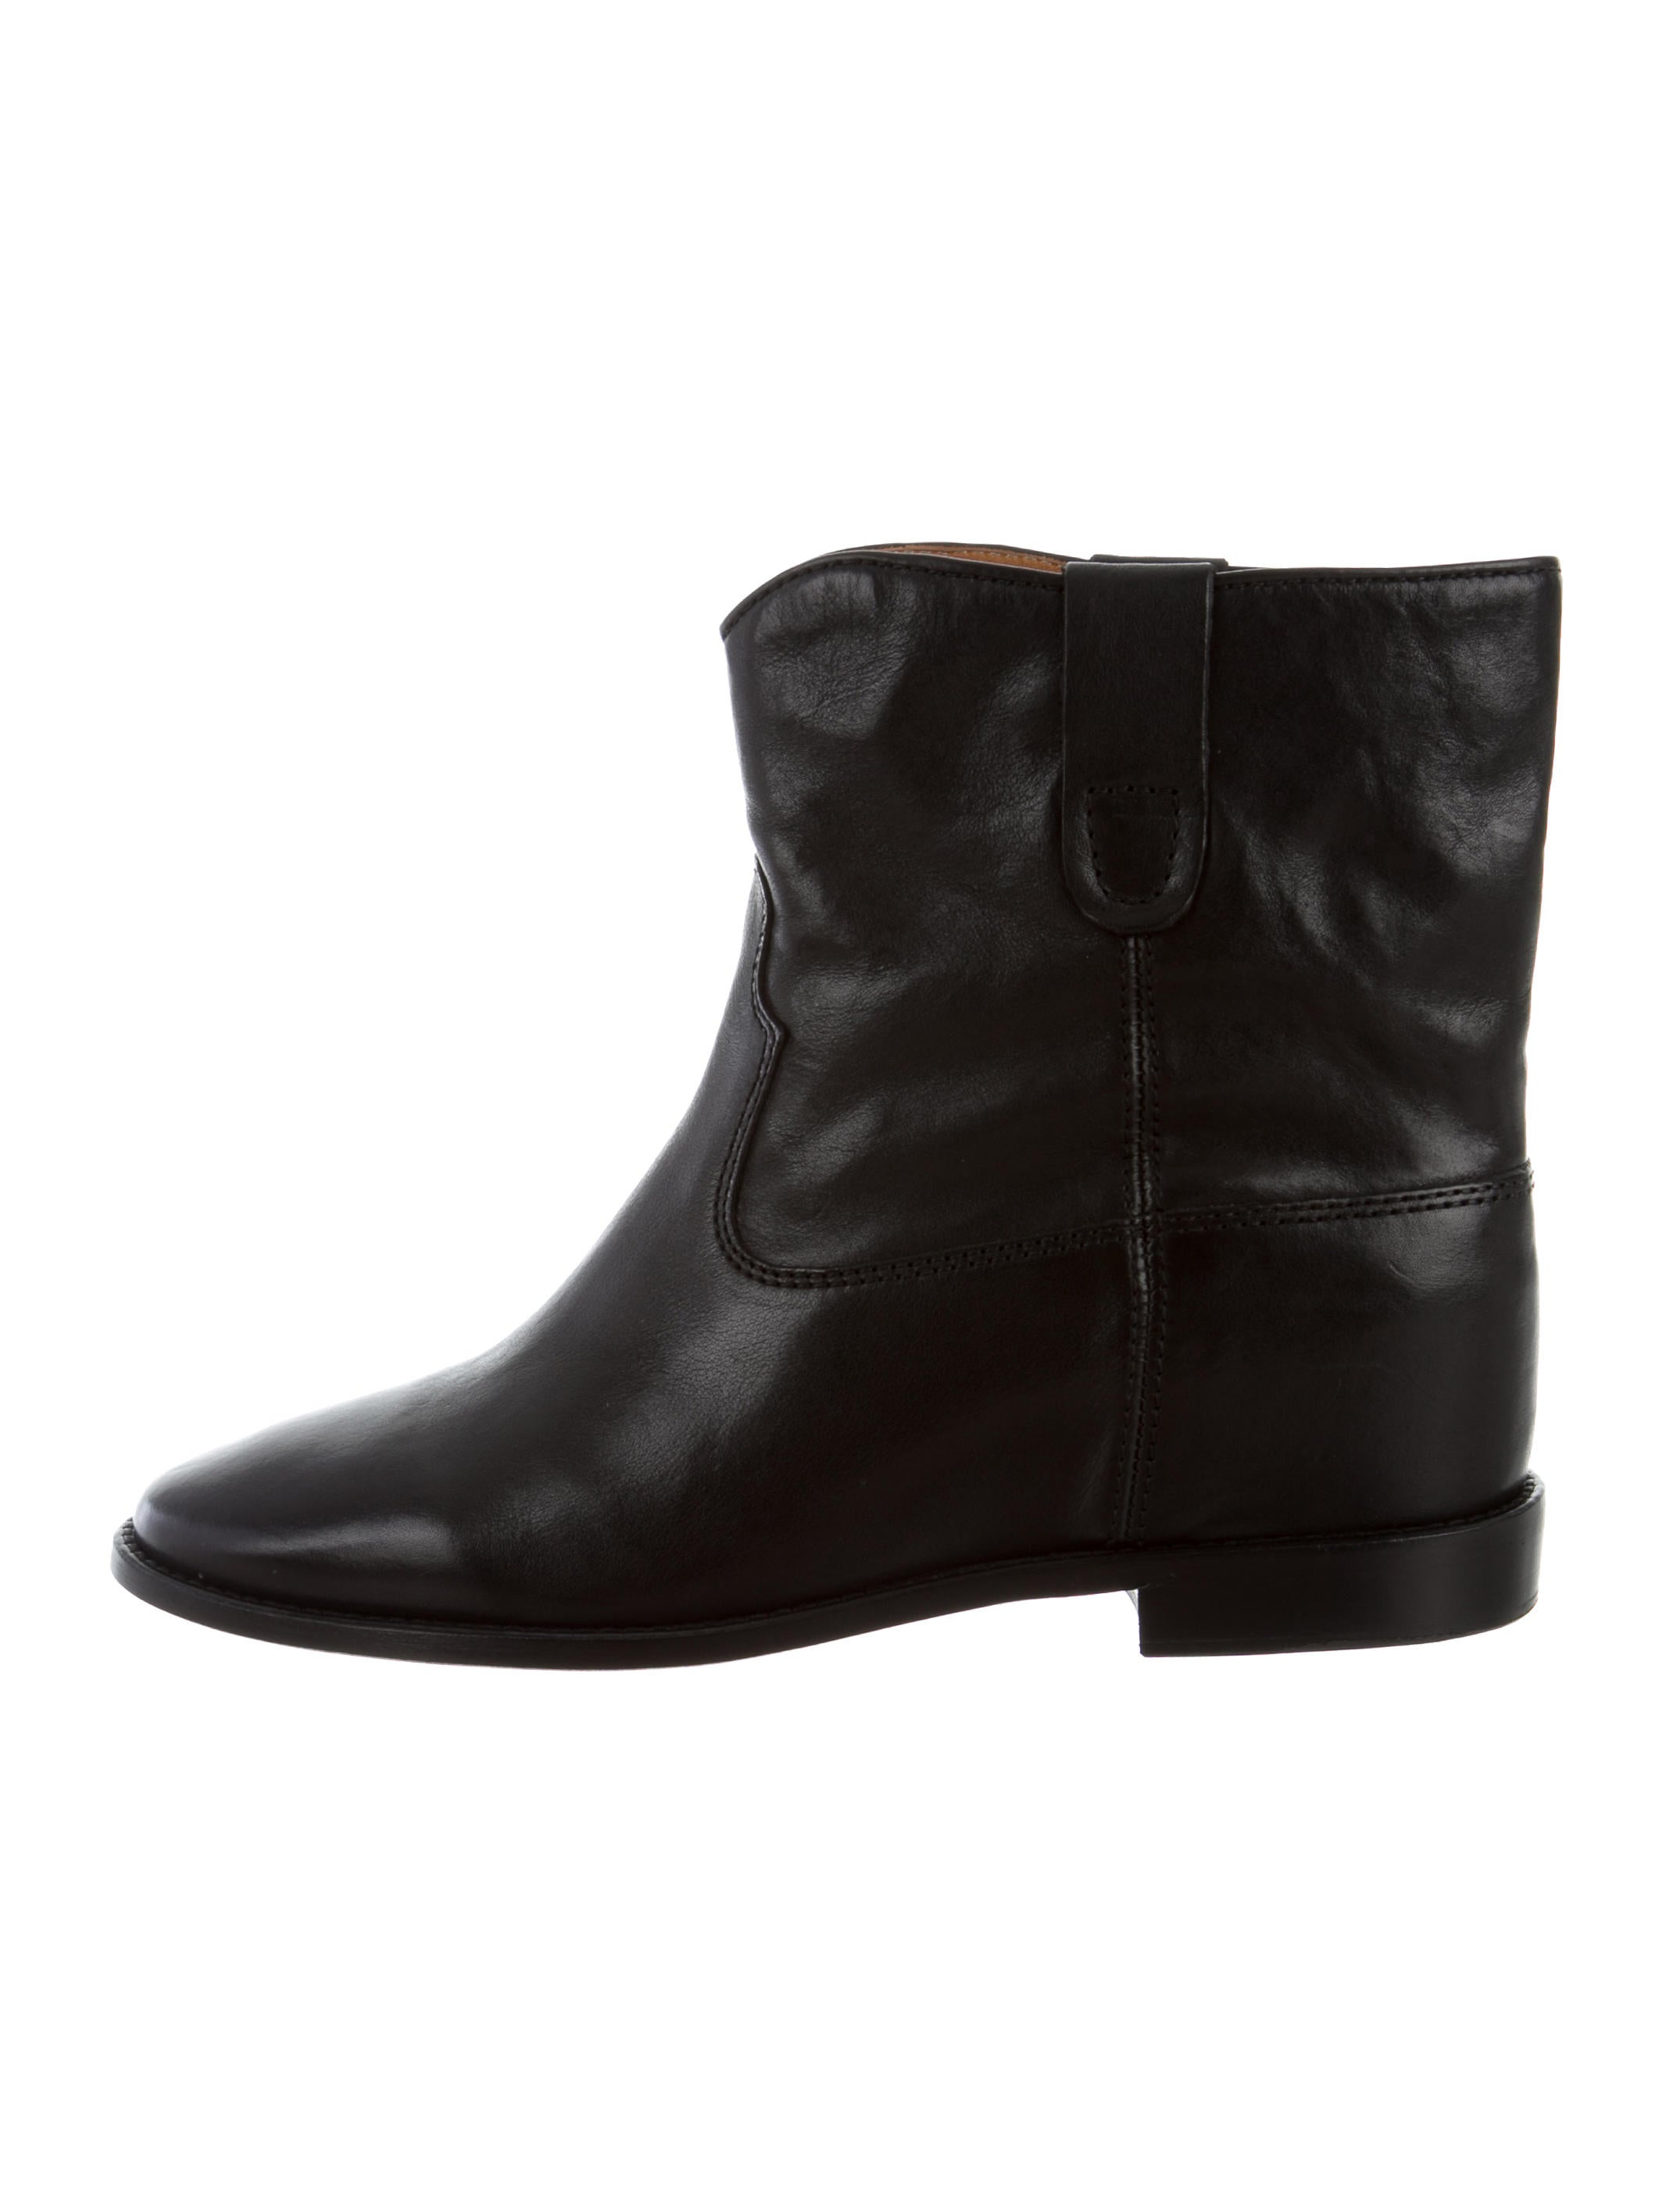 brand new unisex for sale Étoile Isabel Marant Cluster Leather Ankle Boots w/ Tags outlet prices pre order sale online footaction cheap price KbKgIUb